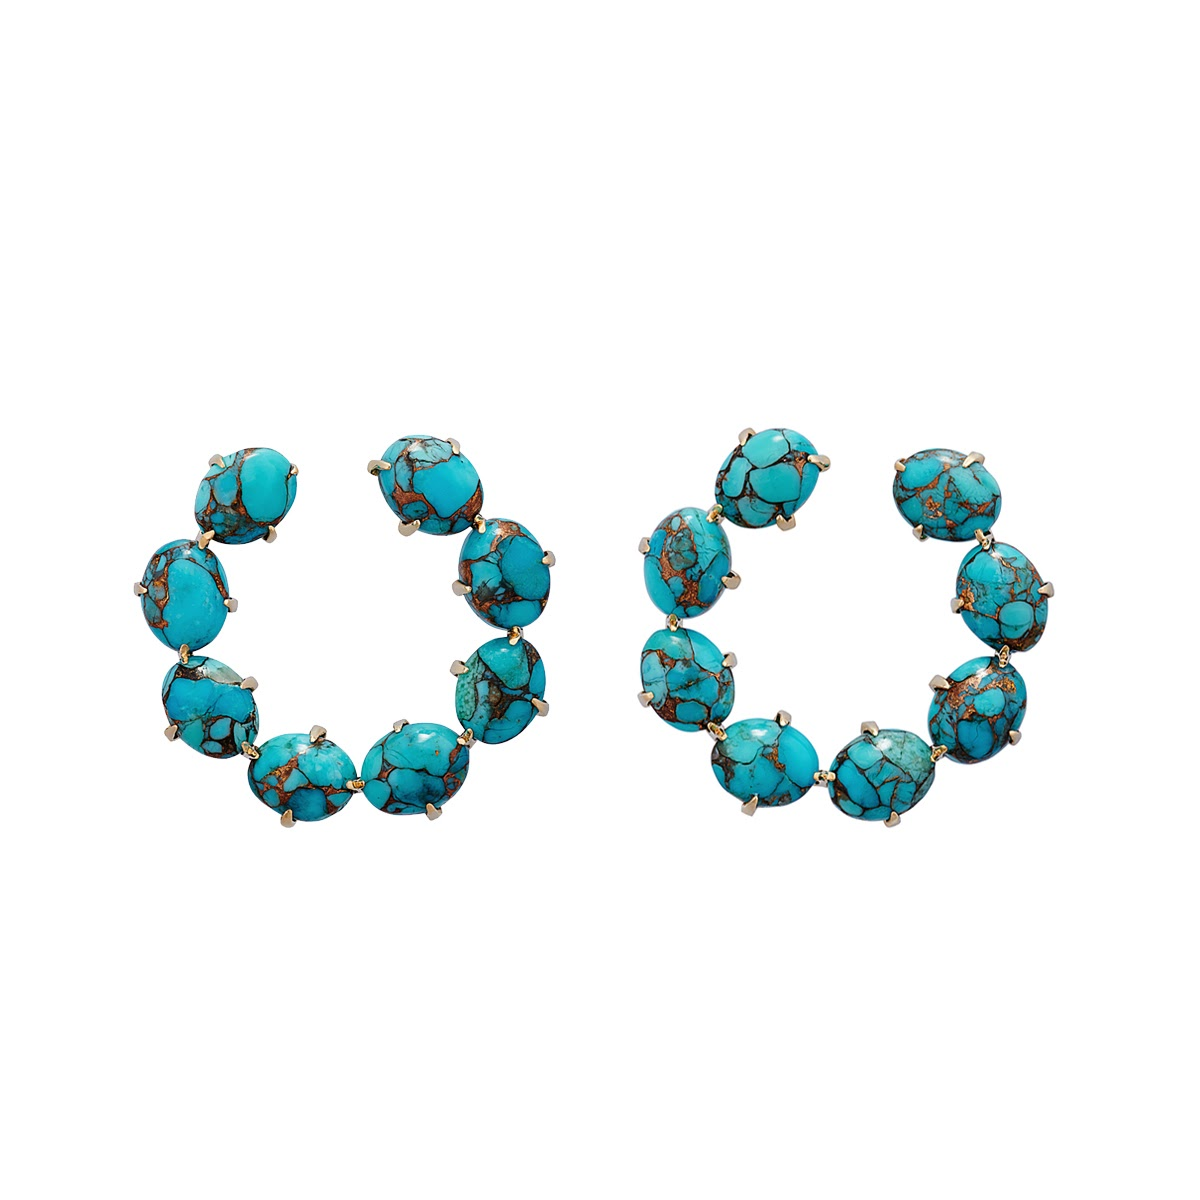 Turquoise Hoops Earrings by Jewelry Lab on curated-crowd.com